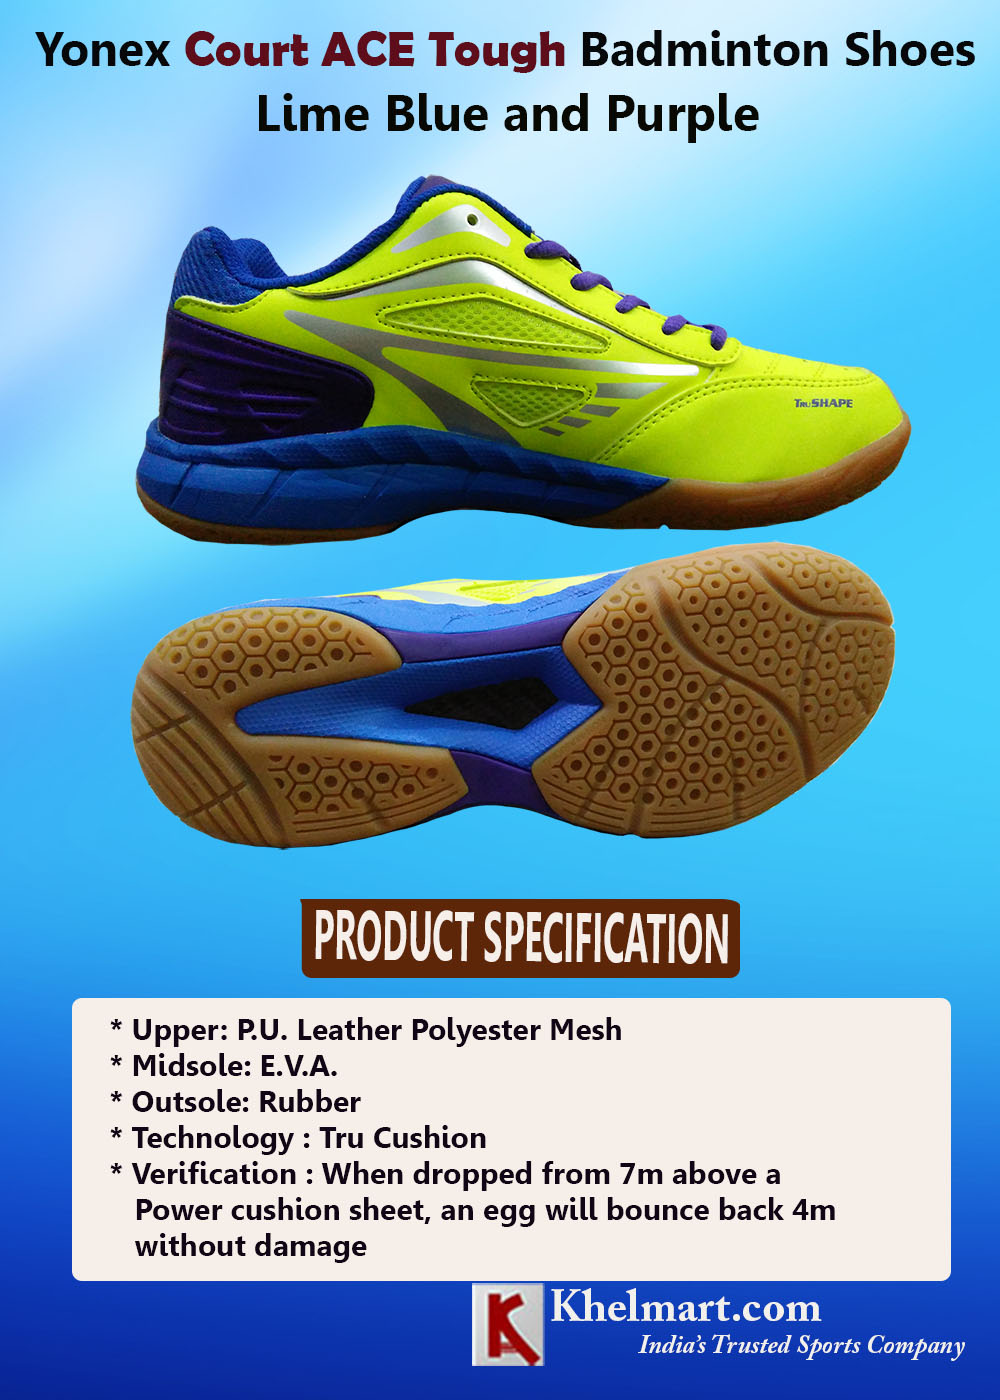 Yonex Court ACE Tough Badminton Shoes Lime Blue and Purple_3